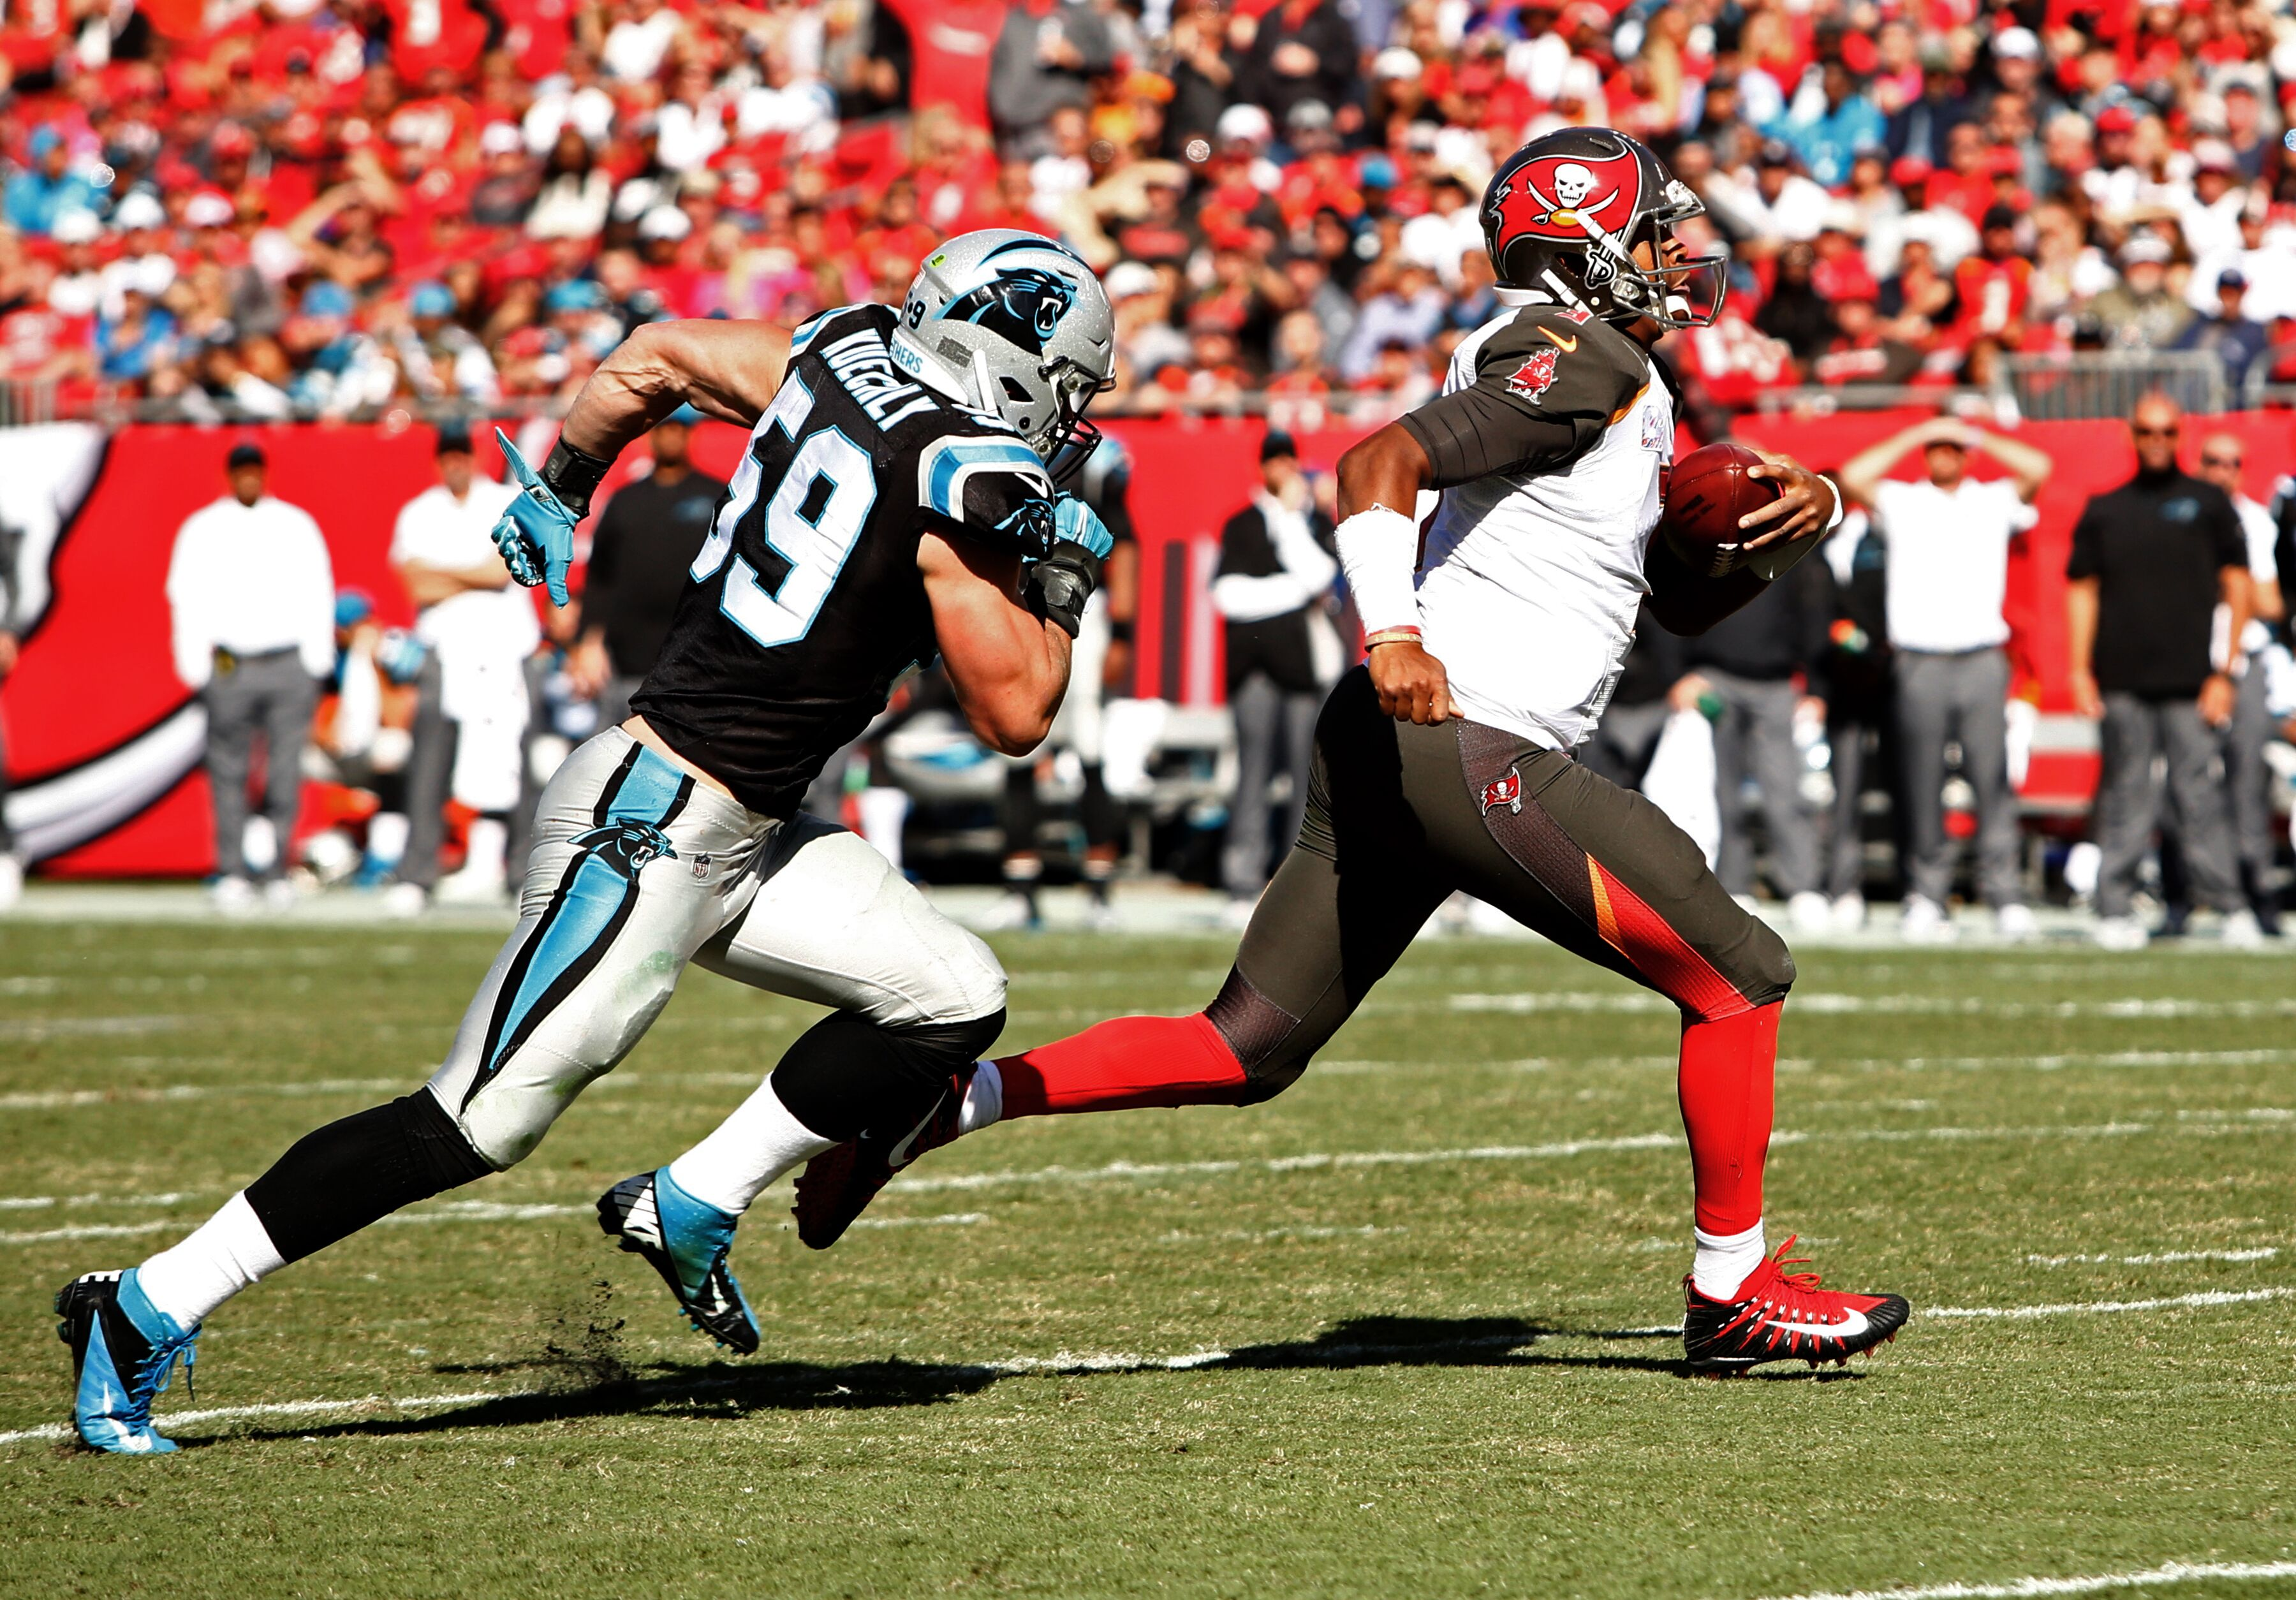 The Panthers are still searching for a guard to take Andrew Norwells place JR Sweezy could be the answer for Carolina